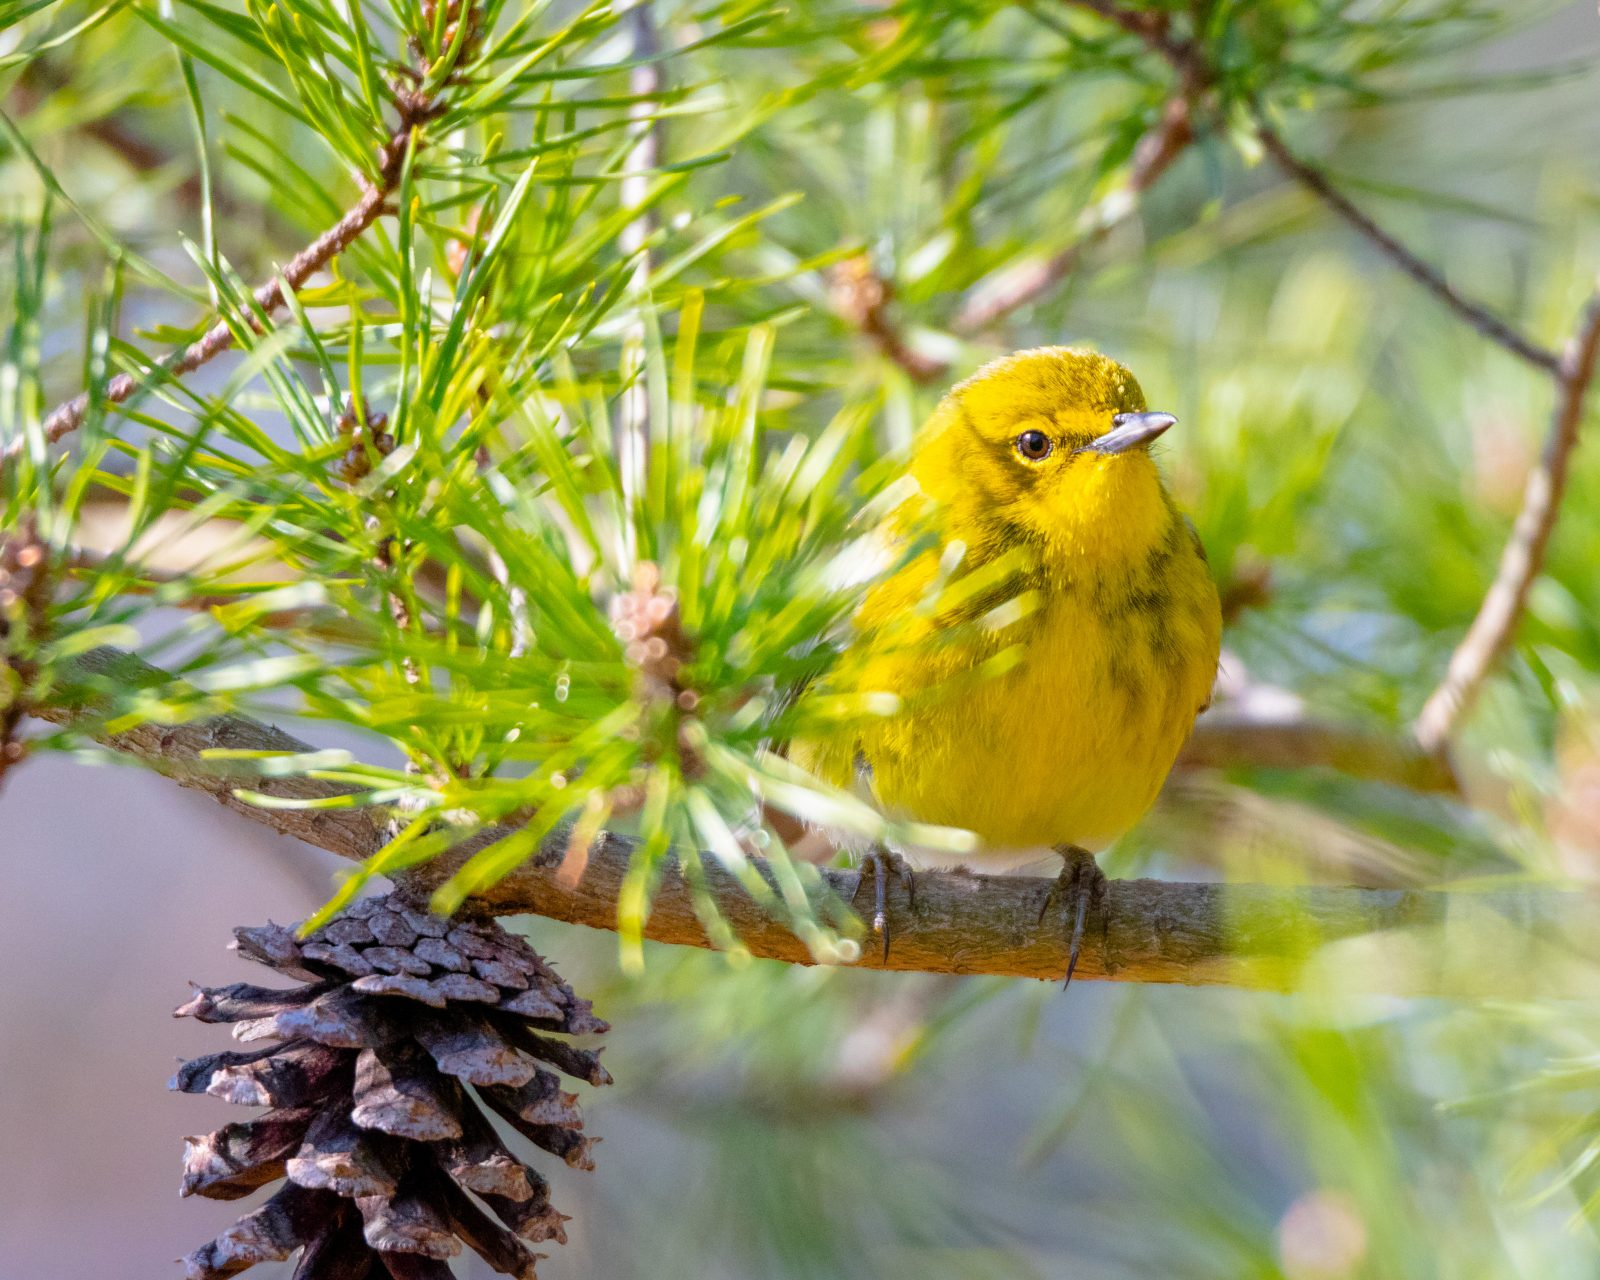 Pine Warbler in a Pine Tree